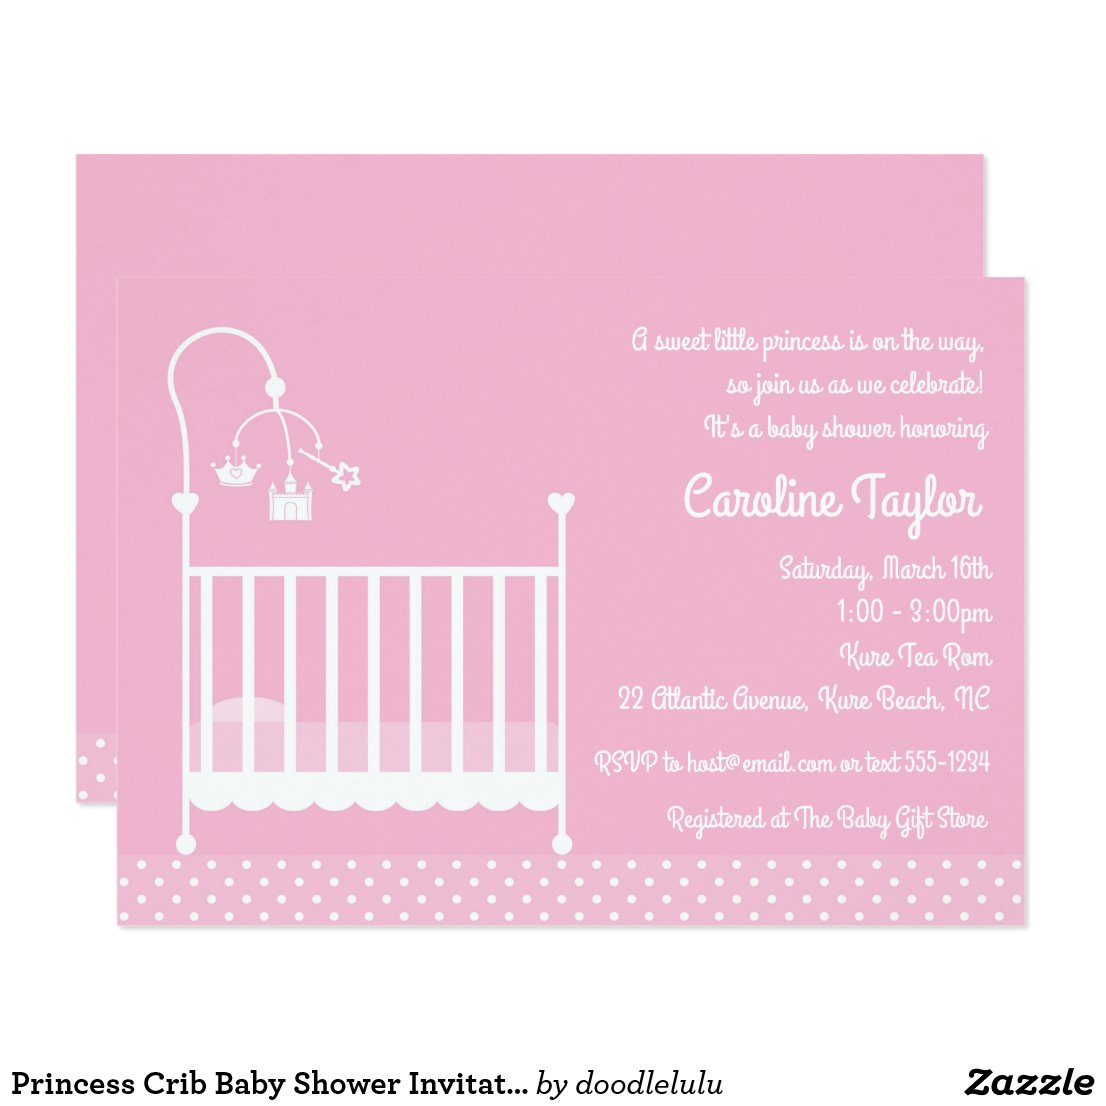 Princess Crib Baby Shower Invitation - Pink